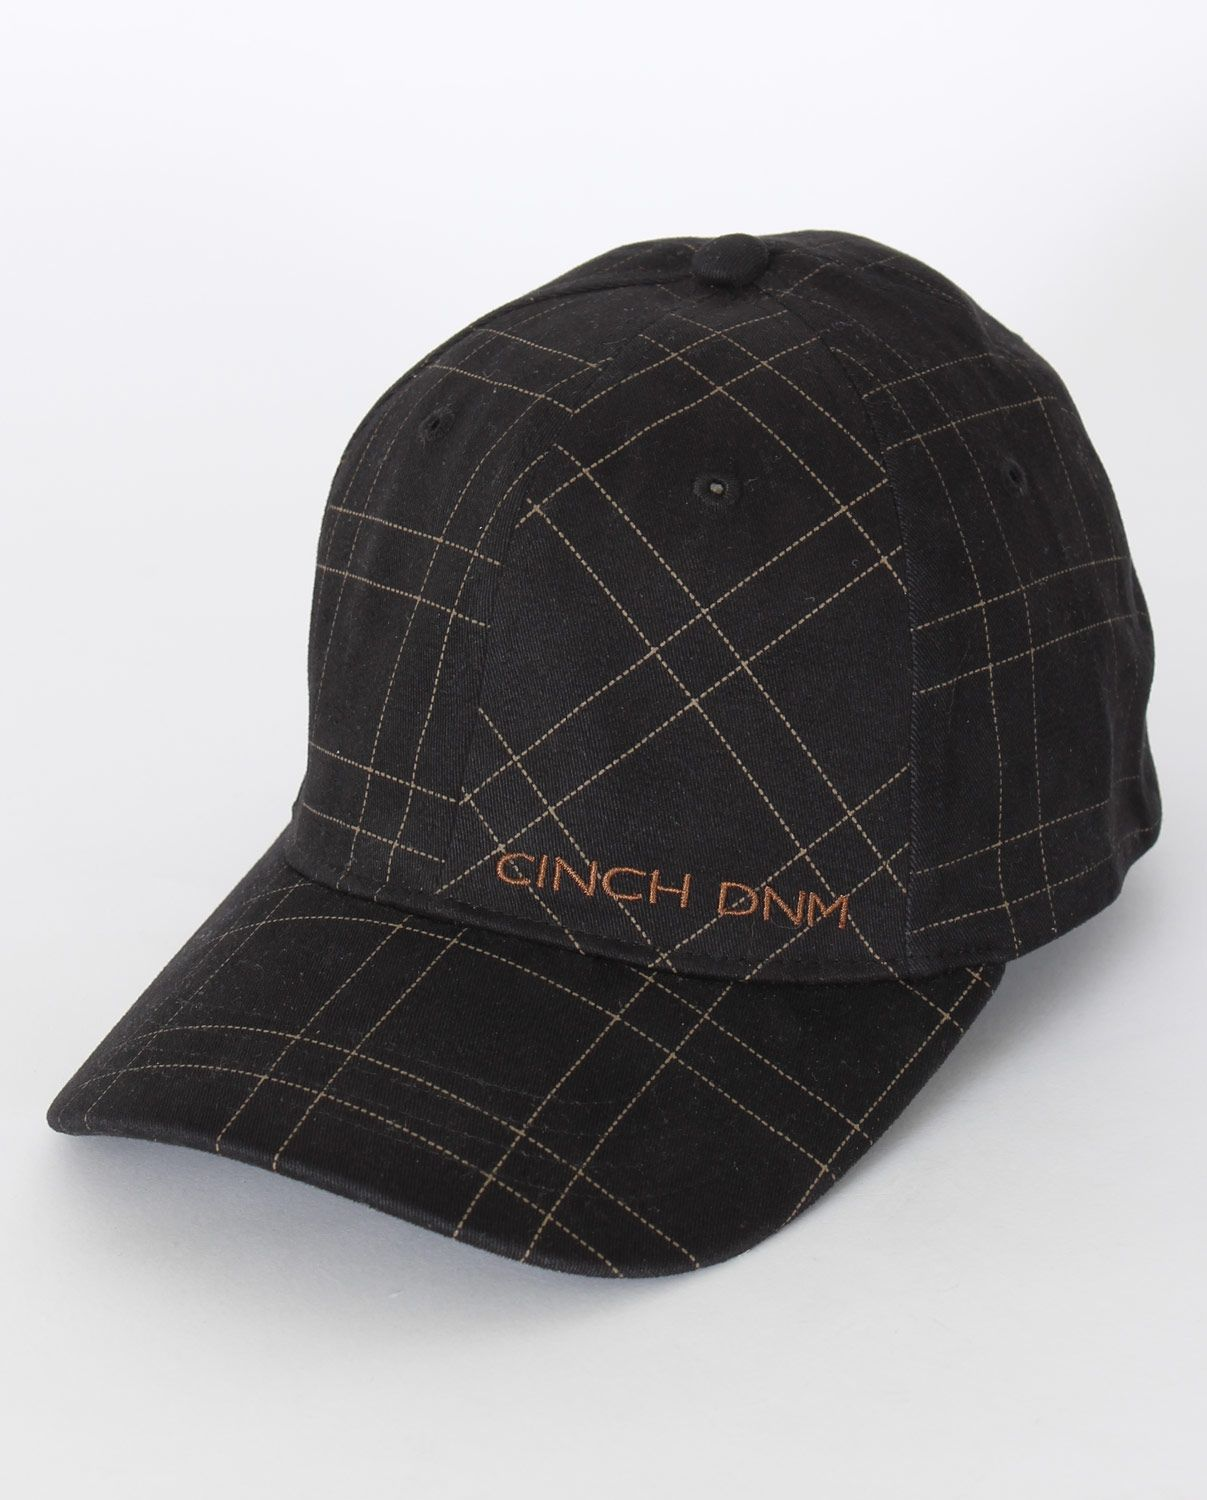 Cinch Men s Fitted Logo Cap - www.fortwestern.com  f934f62dcd4